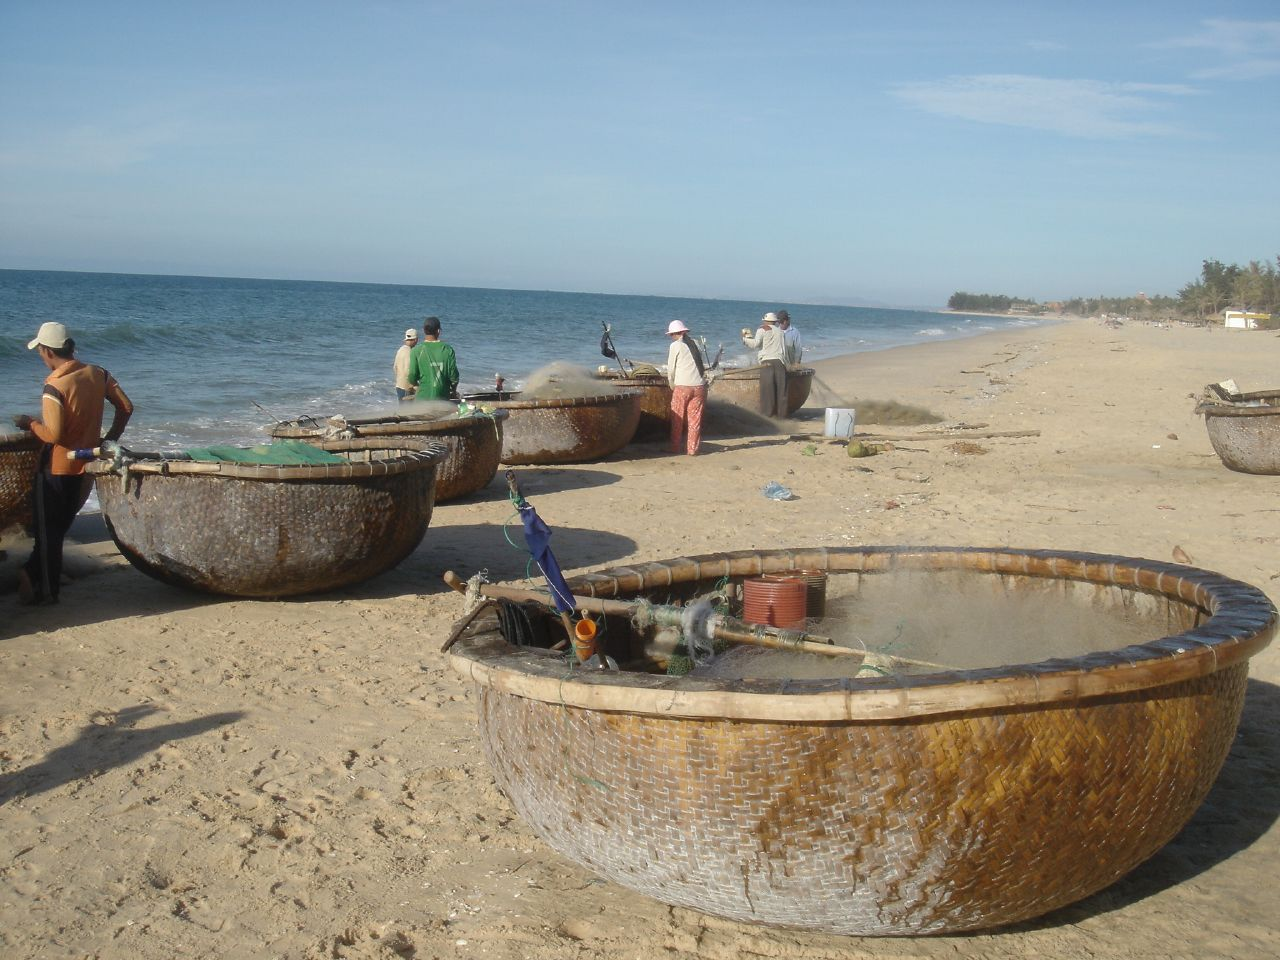 Coracle_fishing_boats_in_Vietnam_02